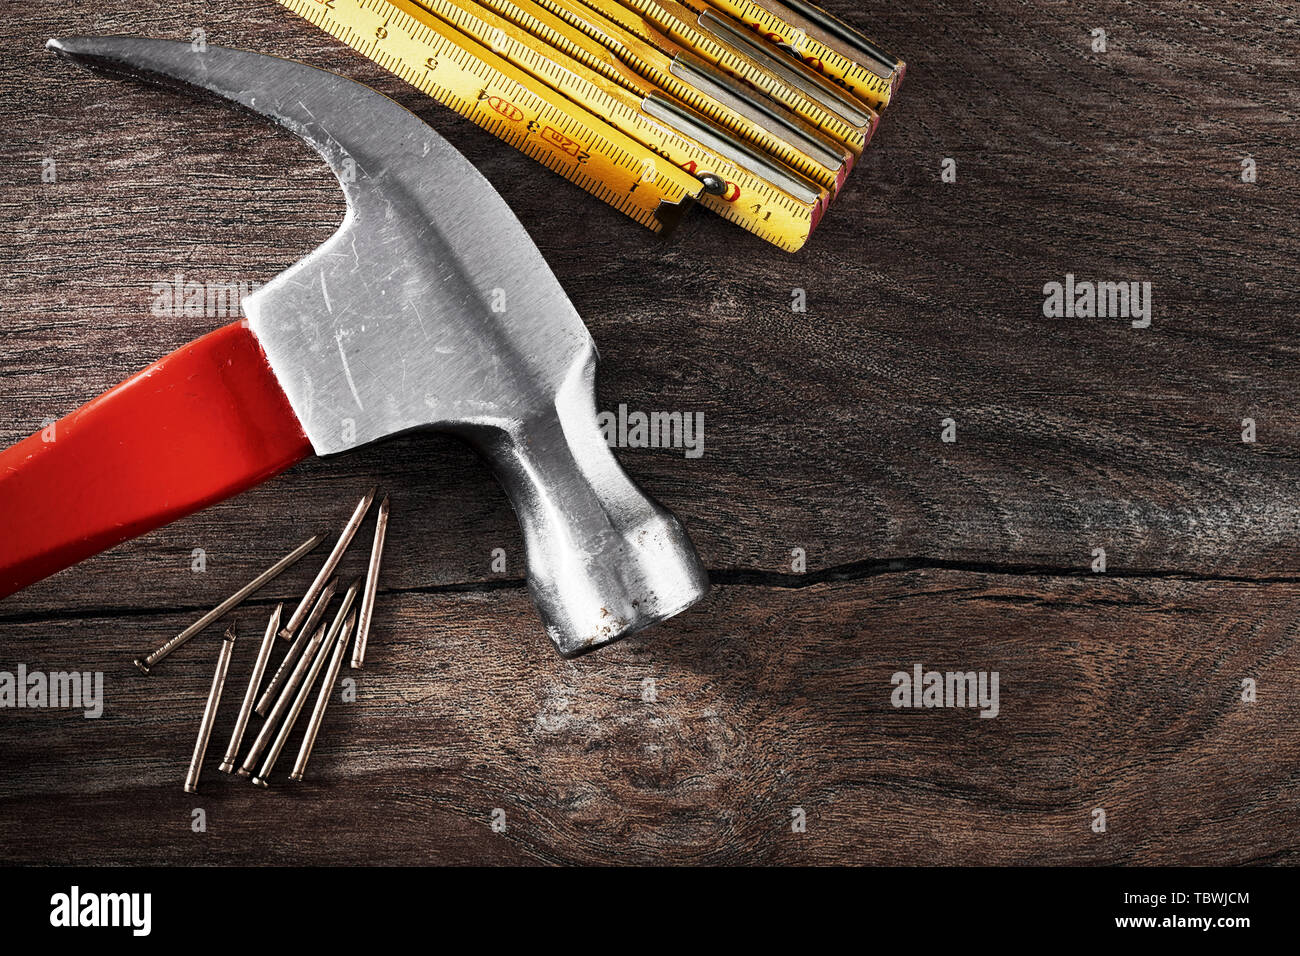 Hammer, folding rule and nails on vintage wooden table with copy space. Close up top down view. - Stock Image